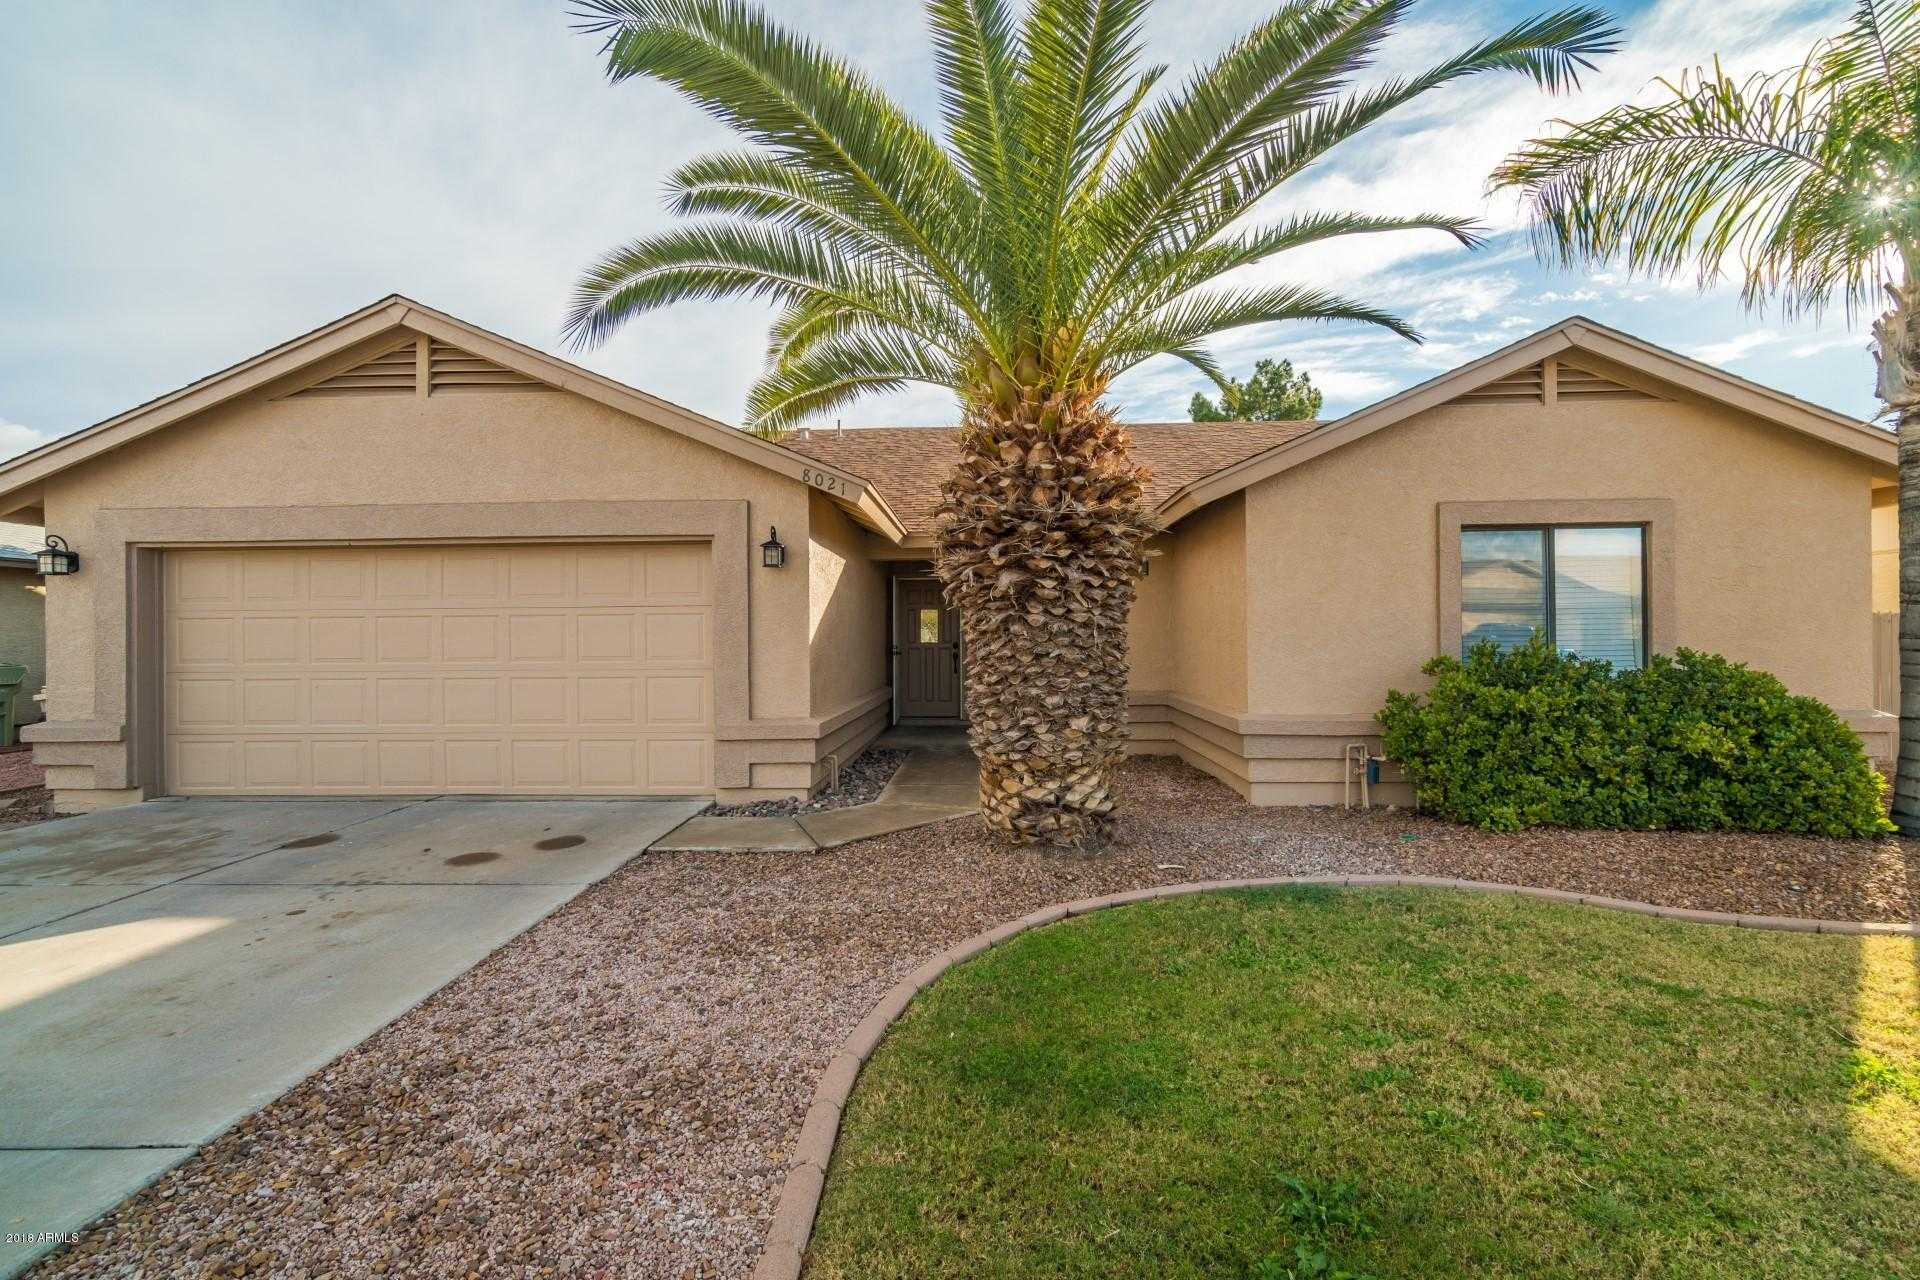 $234,000 - 3Br/2Ba - Home for Sale in Chaparral Country Amd Lot 1-244 Tr A, Glendale